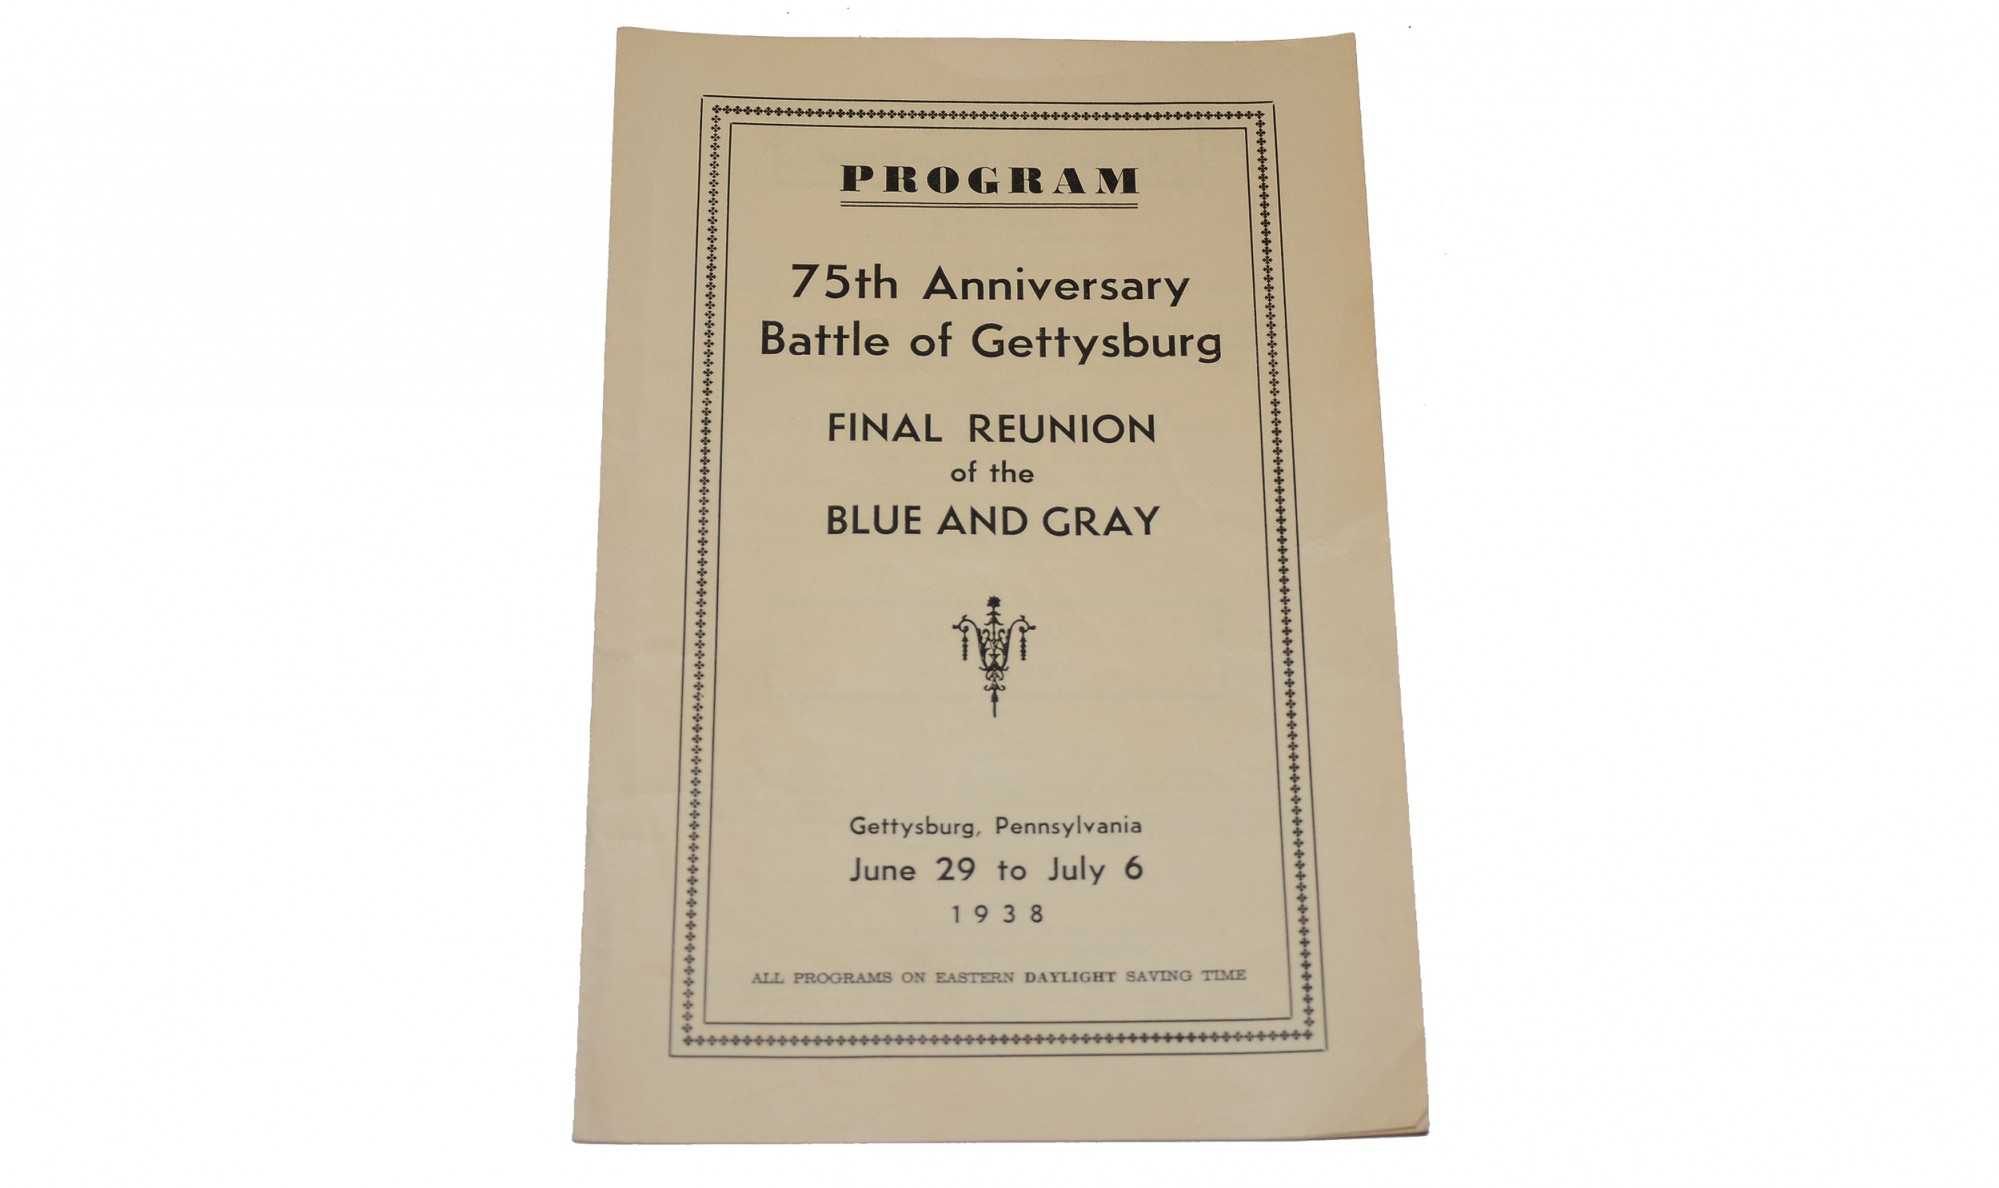 PROGRAM FOR THE 75TH ANNIVERSARY REUNION AT GETTYSBURG FROM THE GETTYSBURG ROSENSTEEL COLLECTION